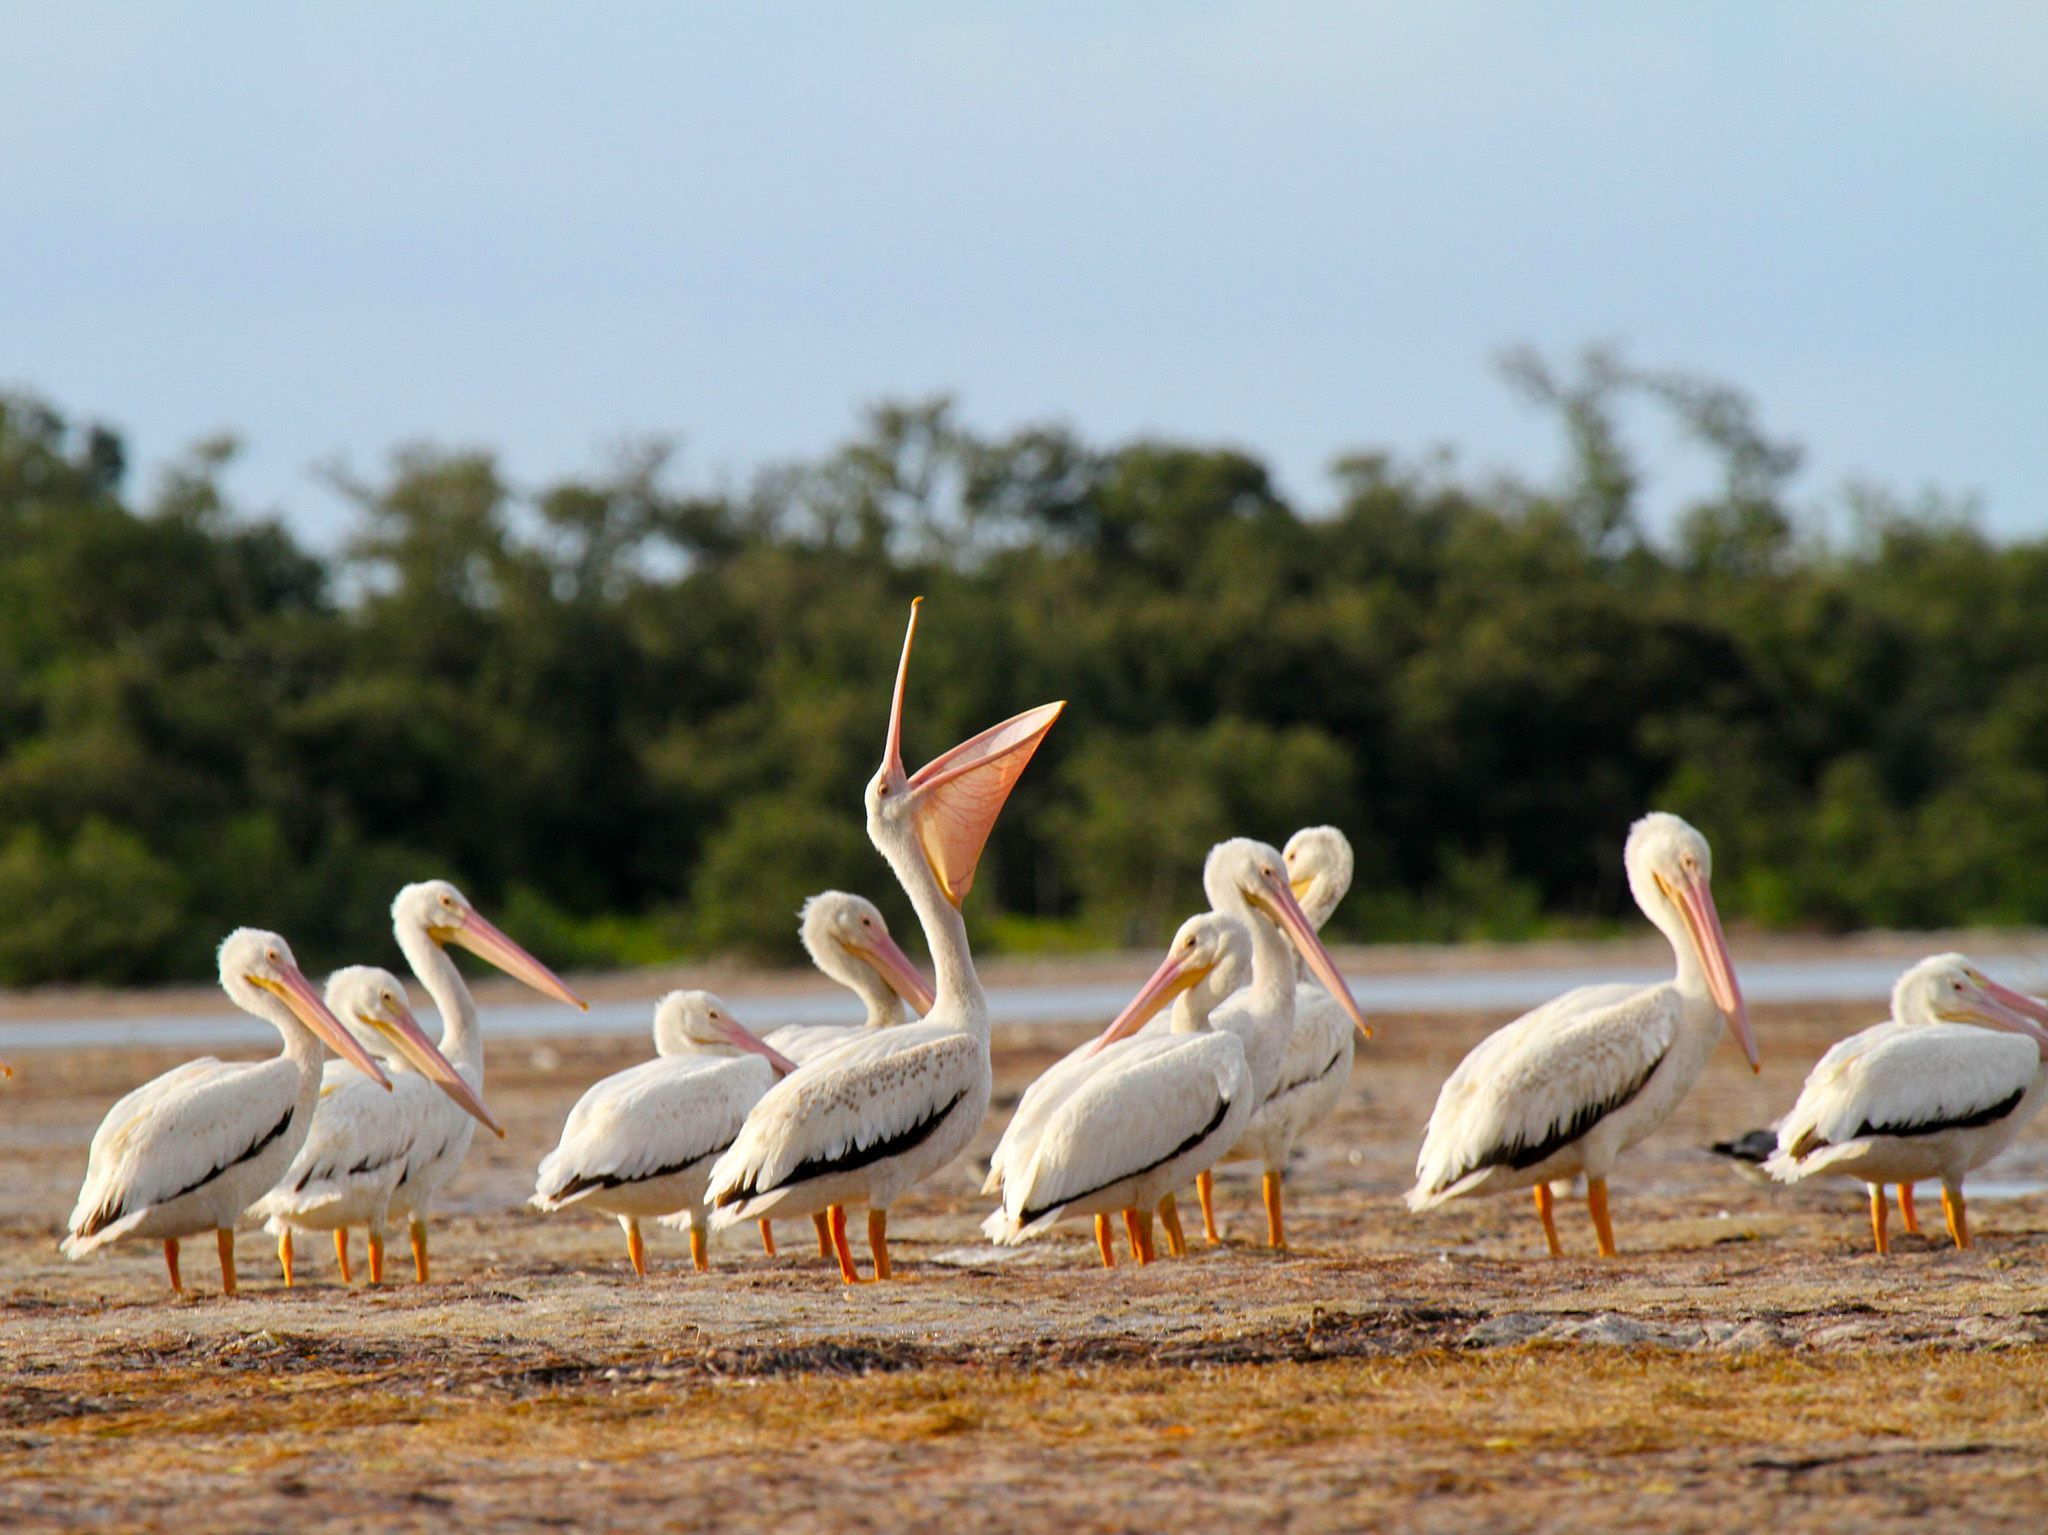 Everglades National Park:  The Everglades are rich fishing grounds for the white pelican.  This... [Foto del giorno - luglio 2018]